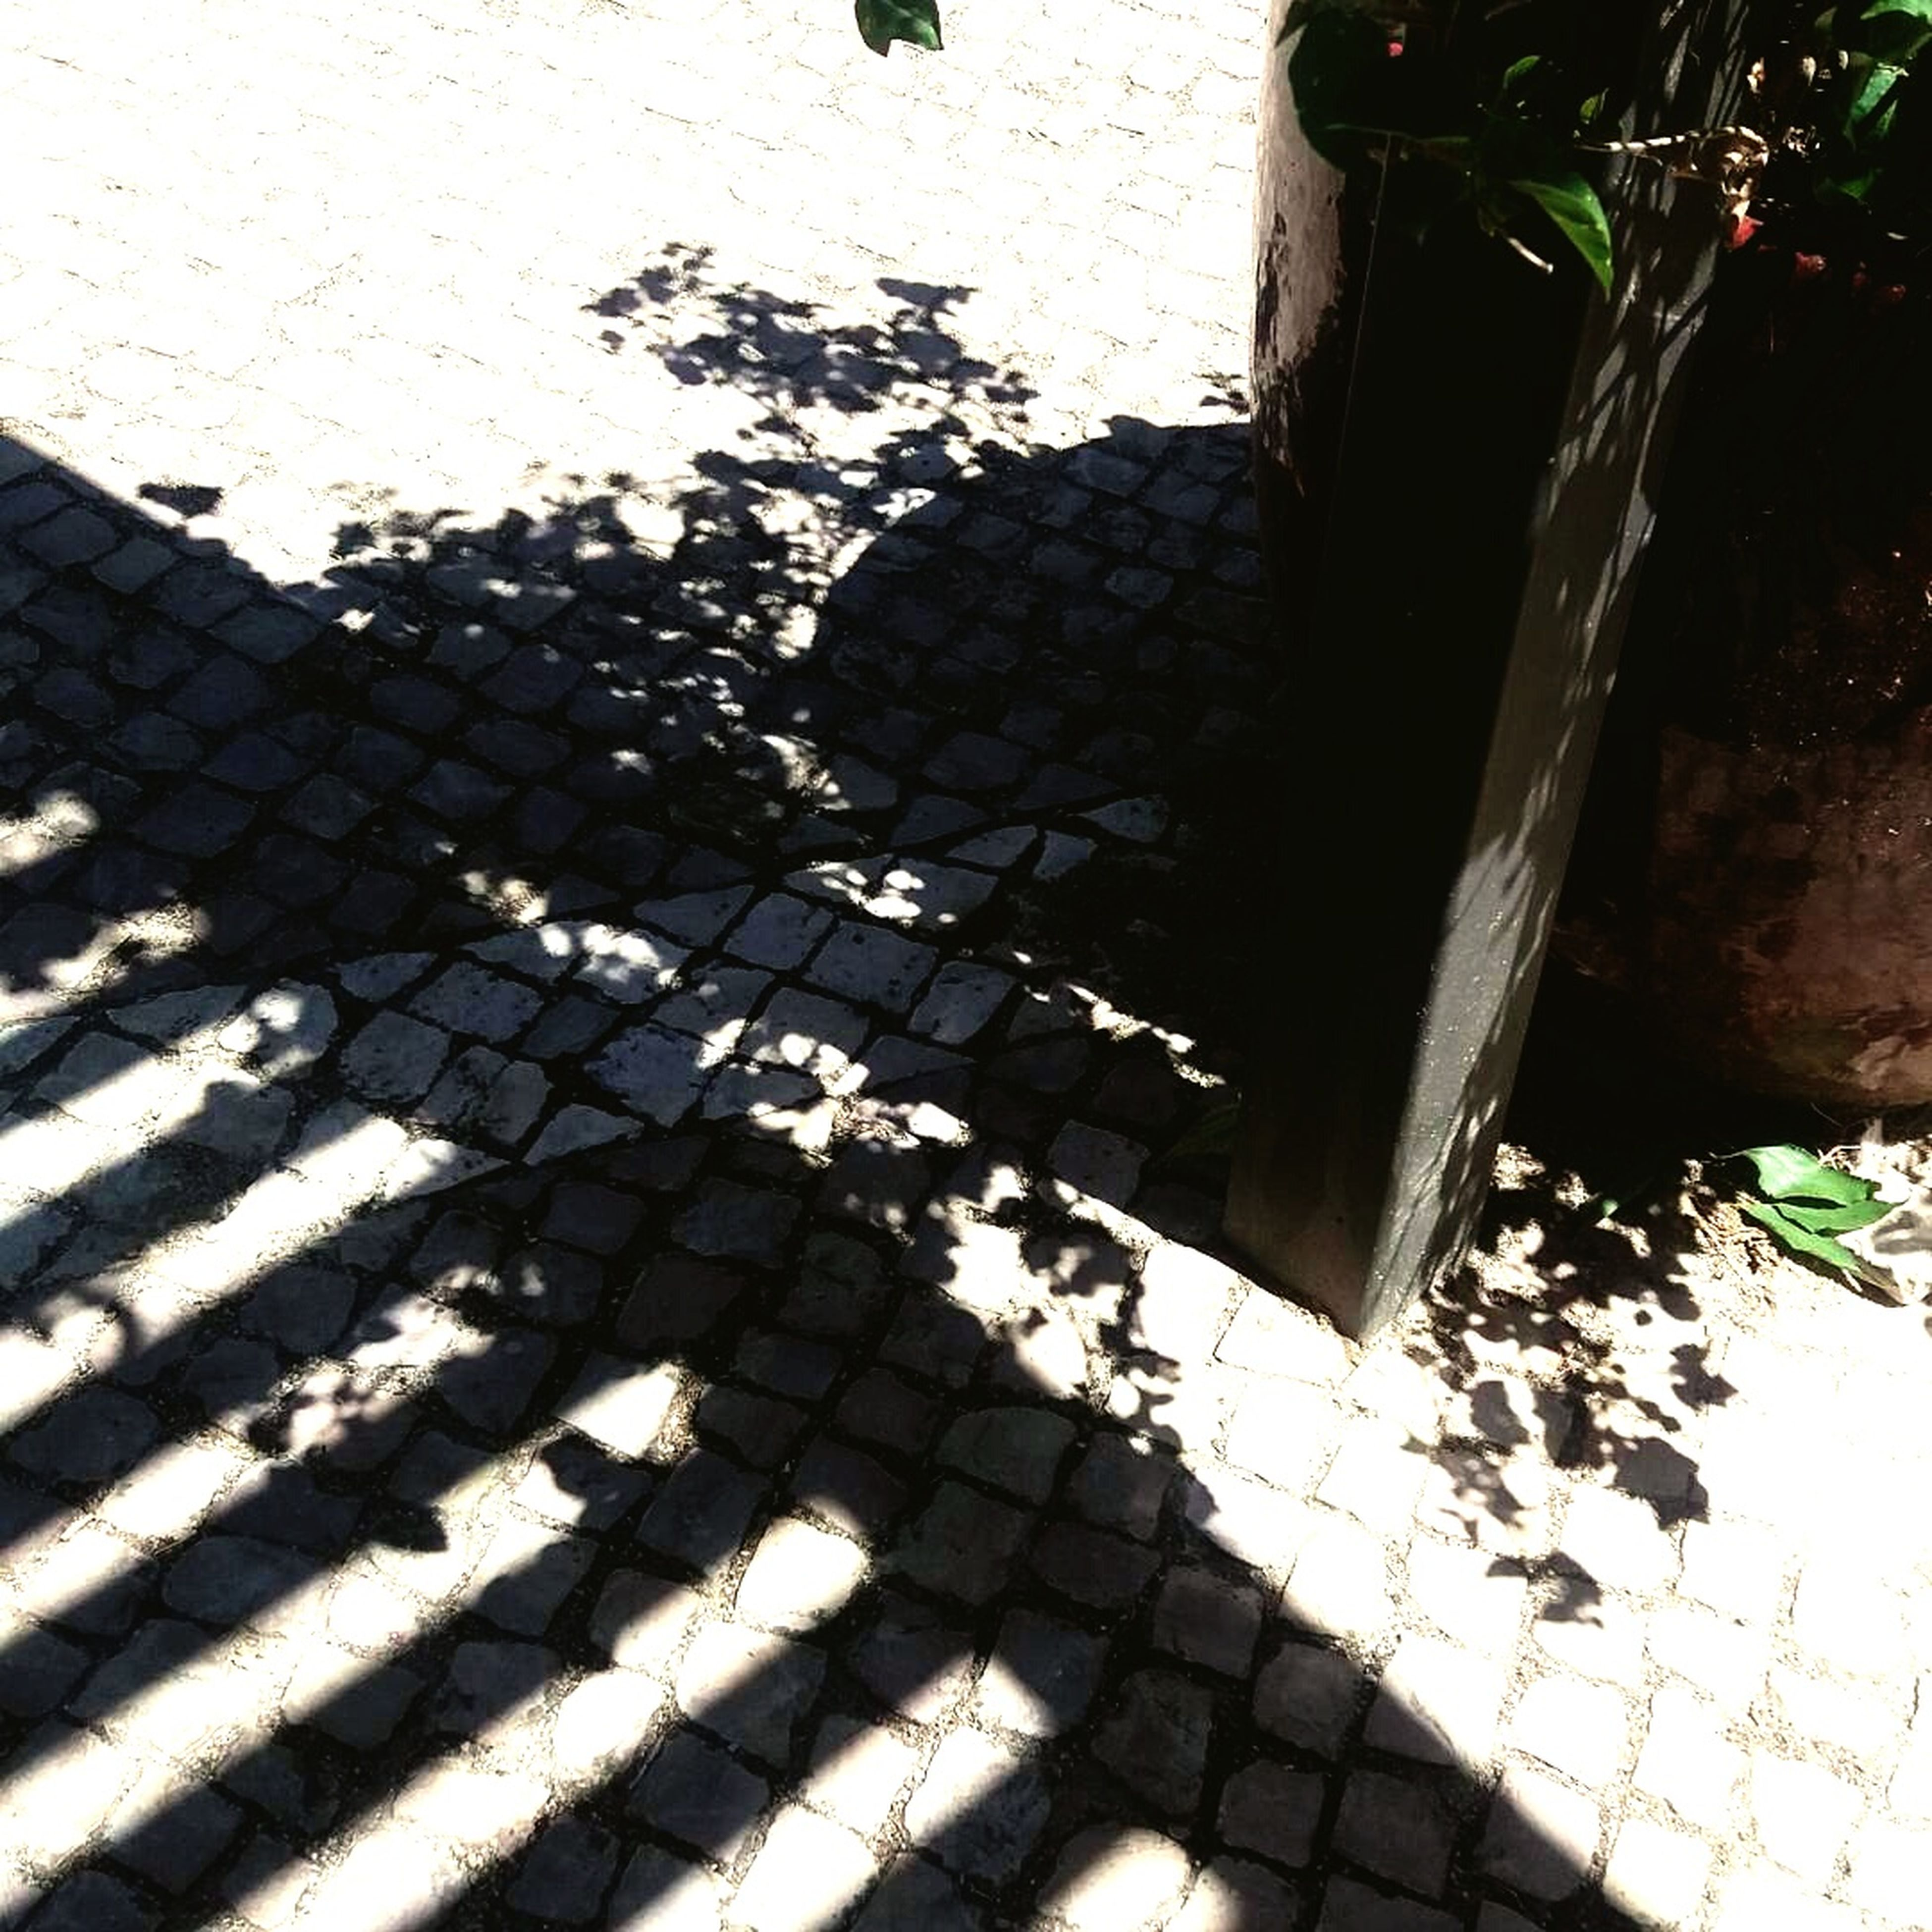 shadow, sunlight, high angle view, day, outdoors, no people, tree, close-up